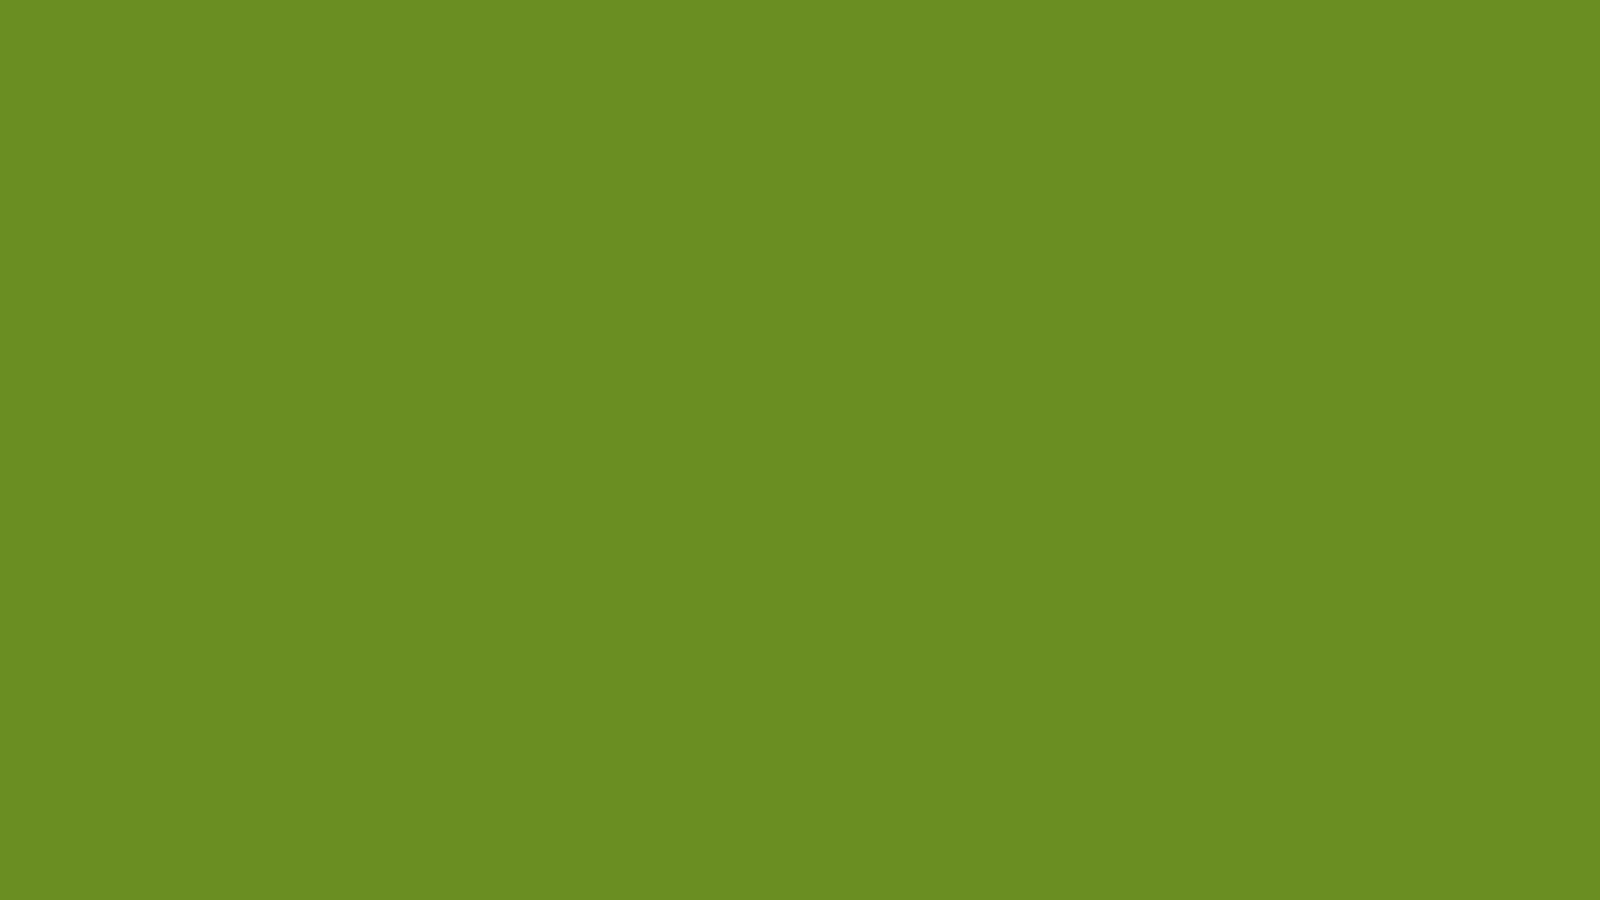 1600x900 Olive Drab Number Three Solid Color Background